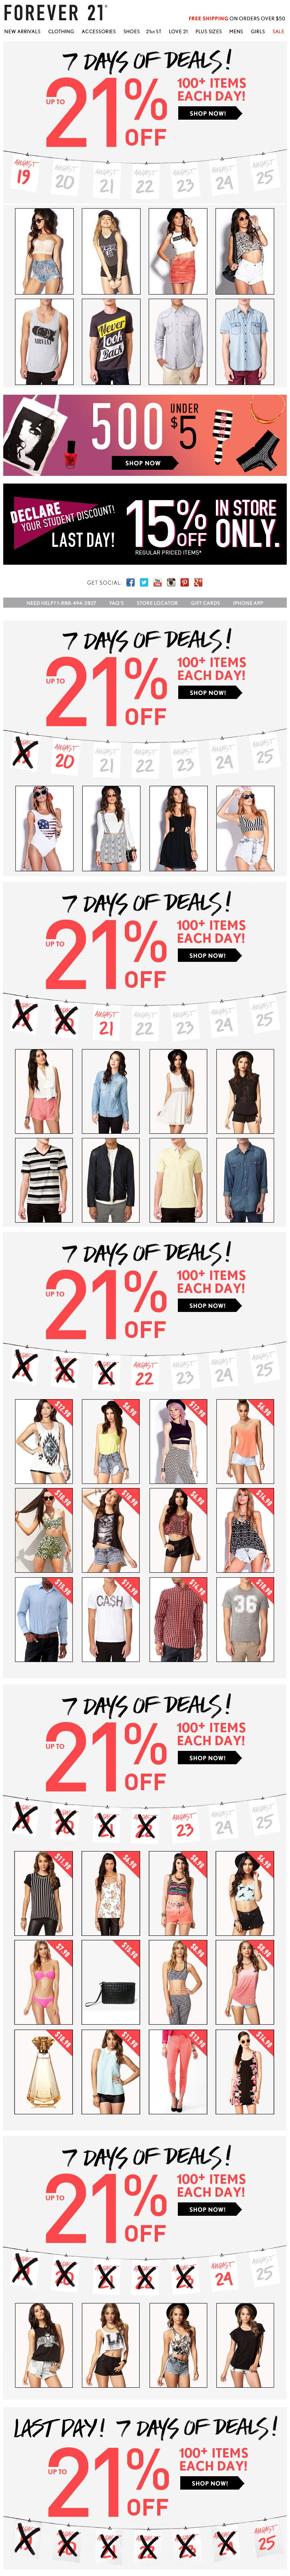 Forever 21 : Days Of Sale #emailmarketing